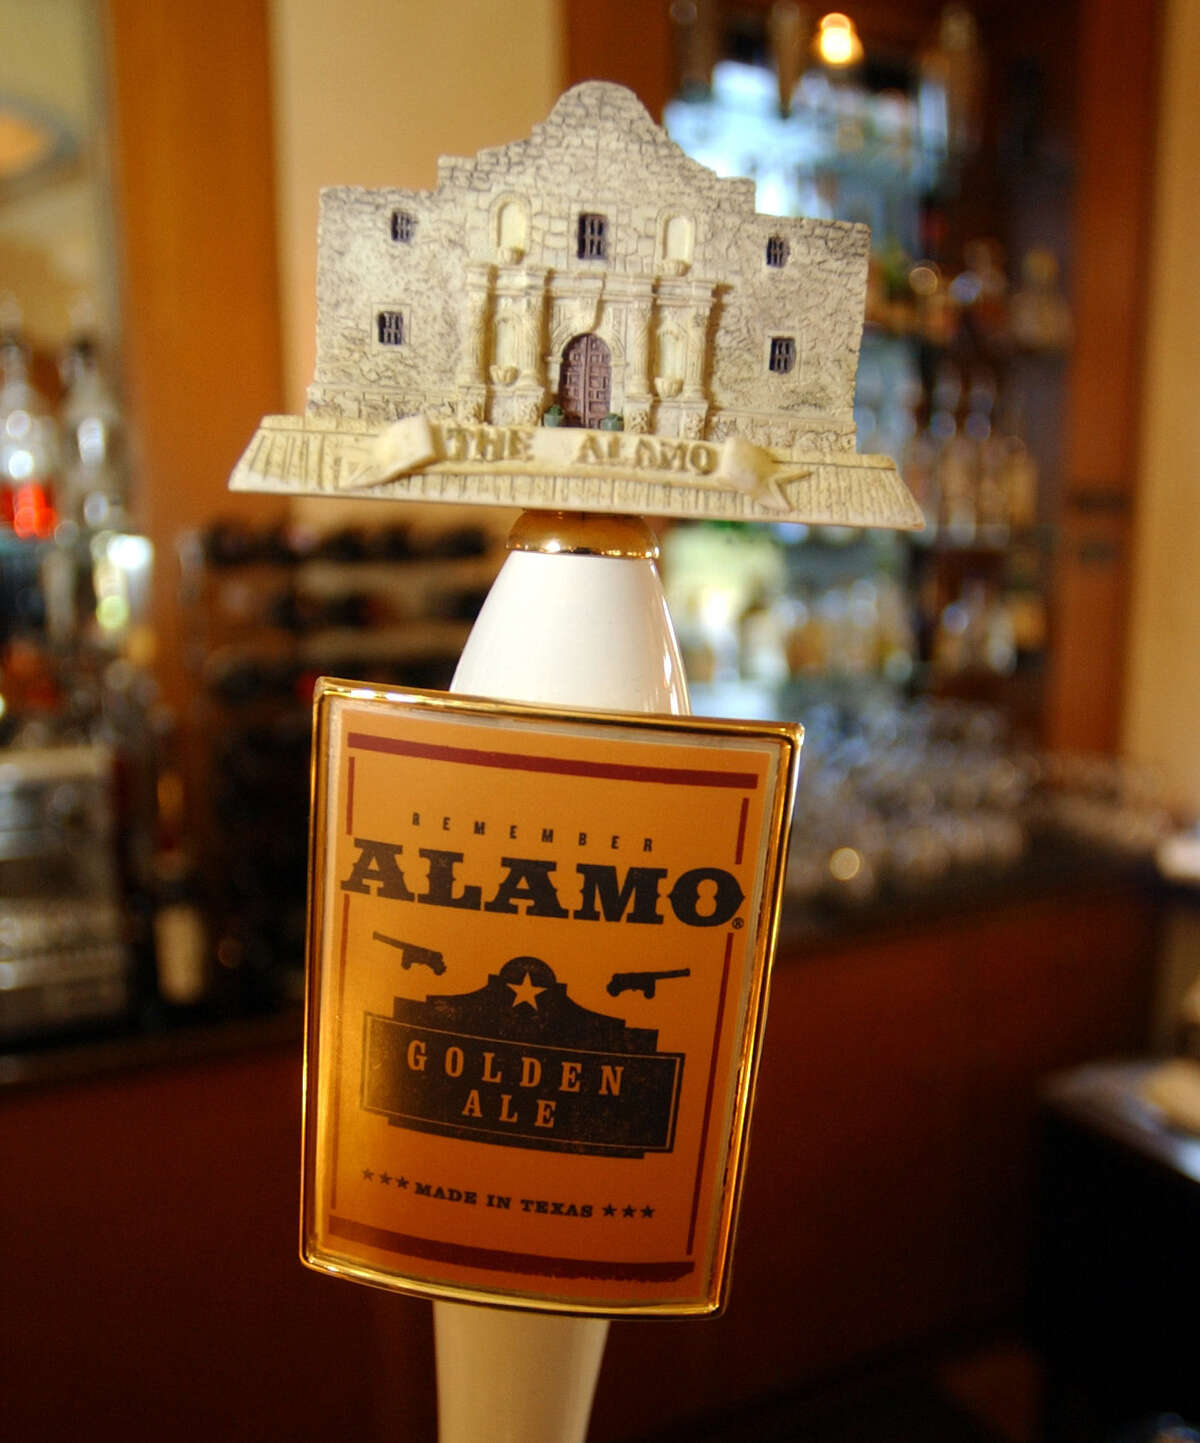 The Alamo Beer Co.'s blonde ale will be joined by other brews once its local facility opens.